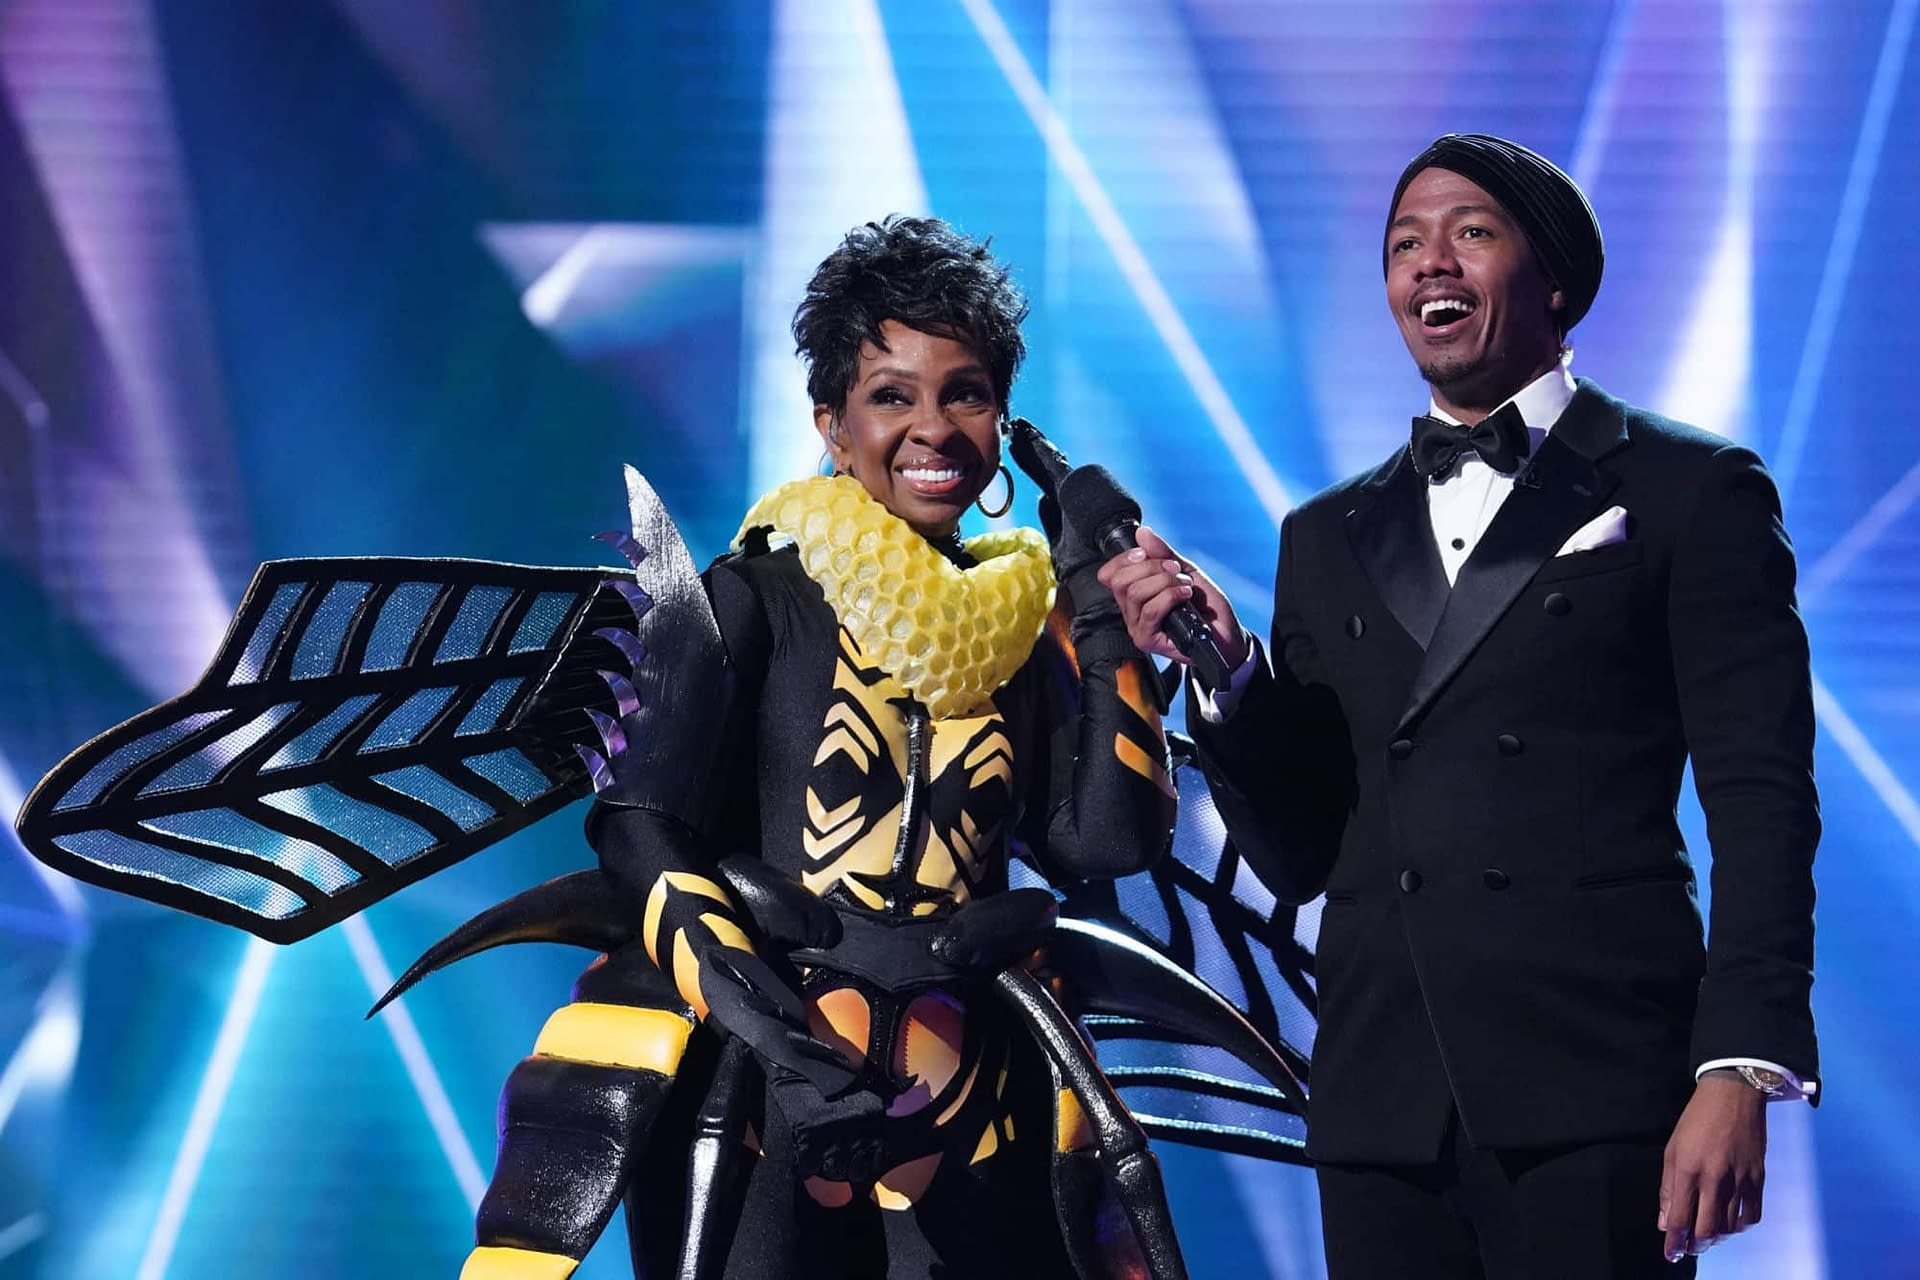 'The Masked Singer' Finale: The Final Masks Are Lifted! Were We Right? [SPOILER REVIEW]